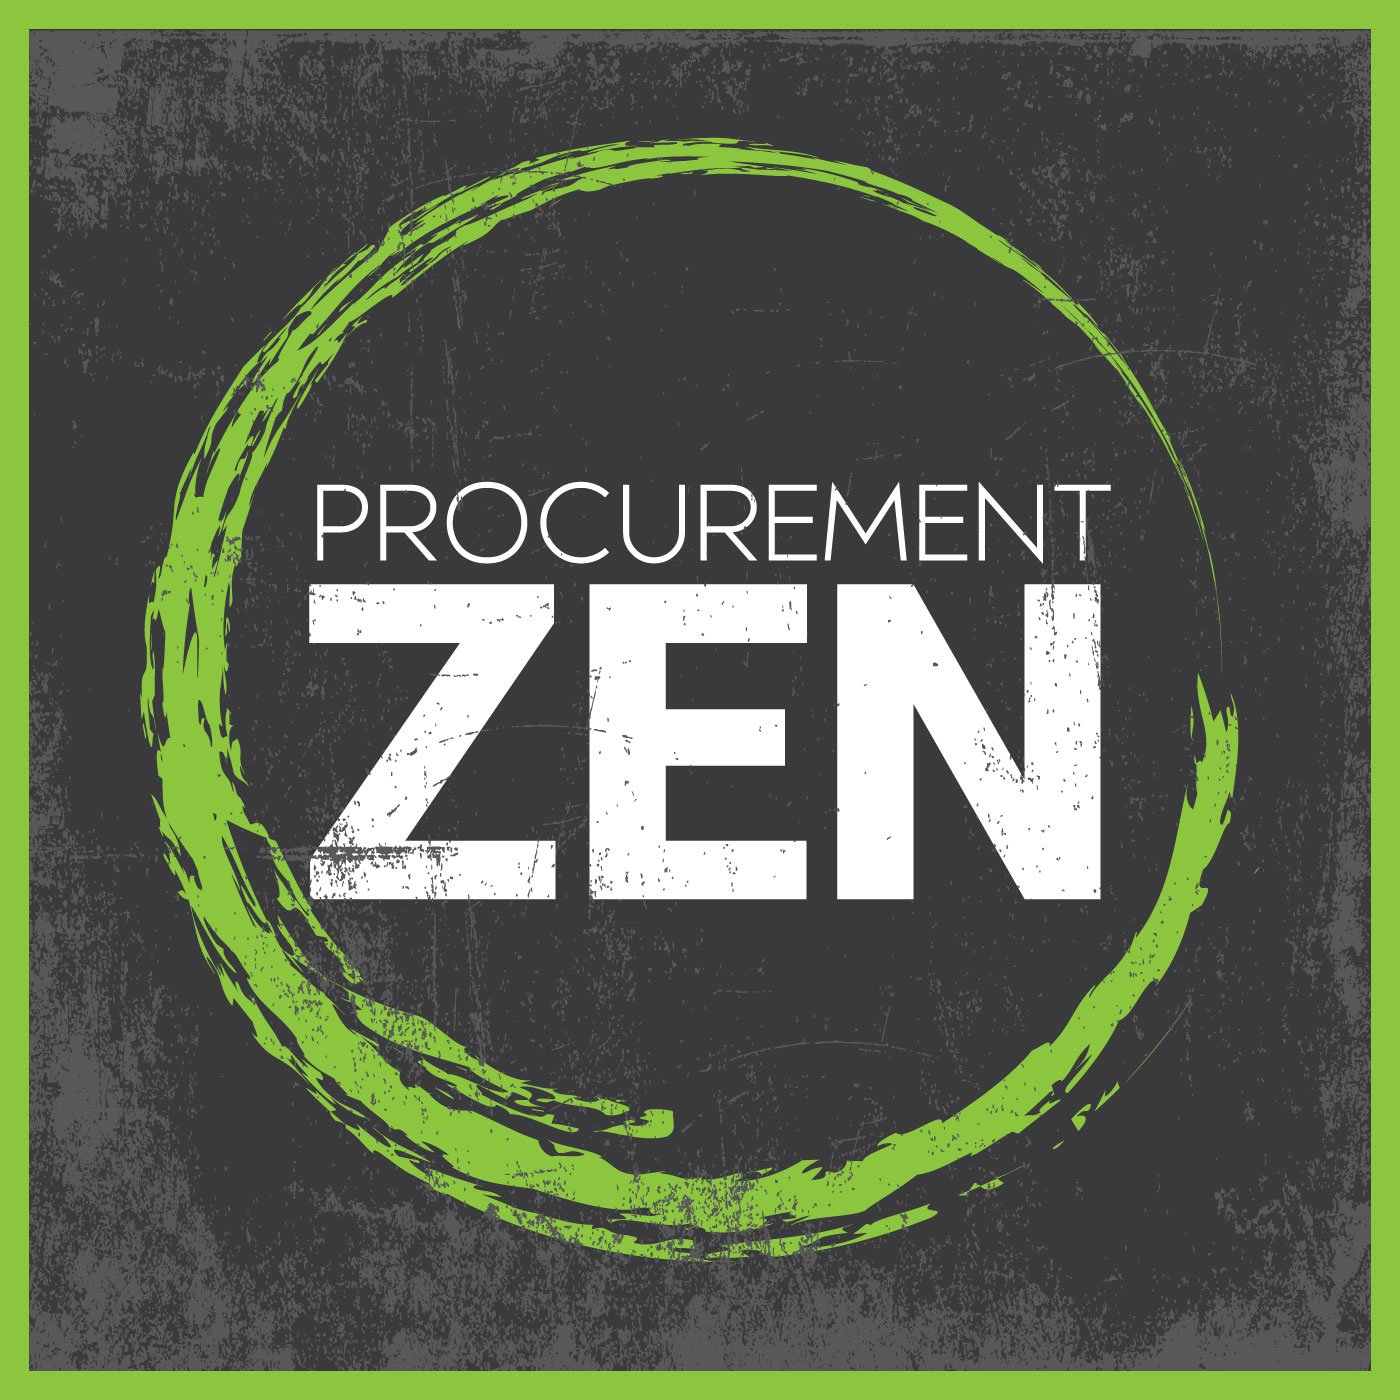 Procurement Zen